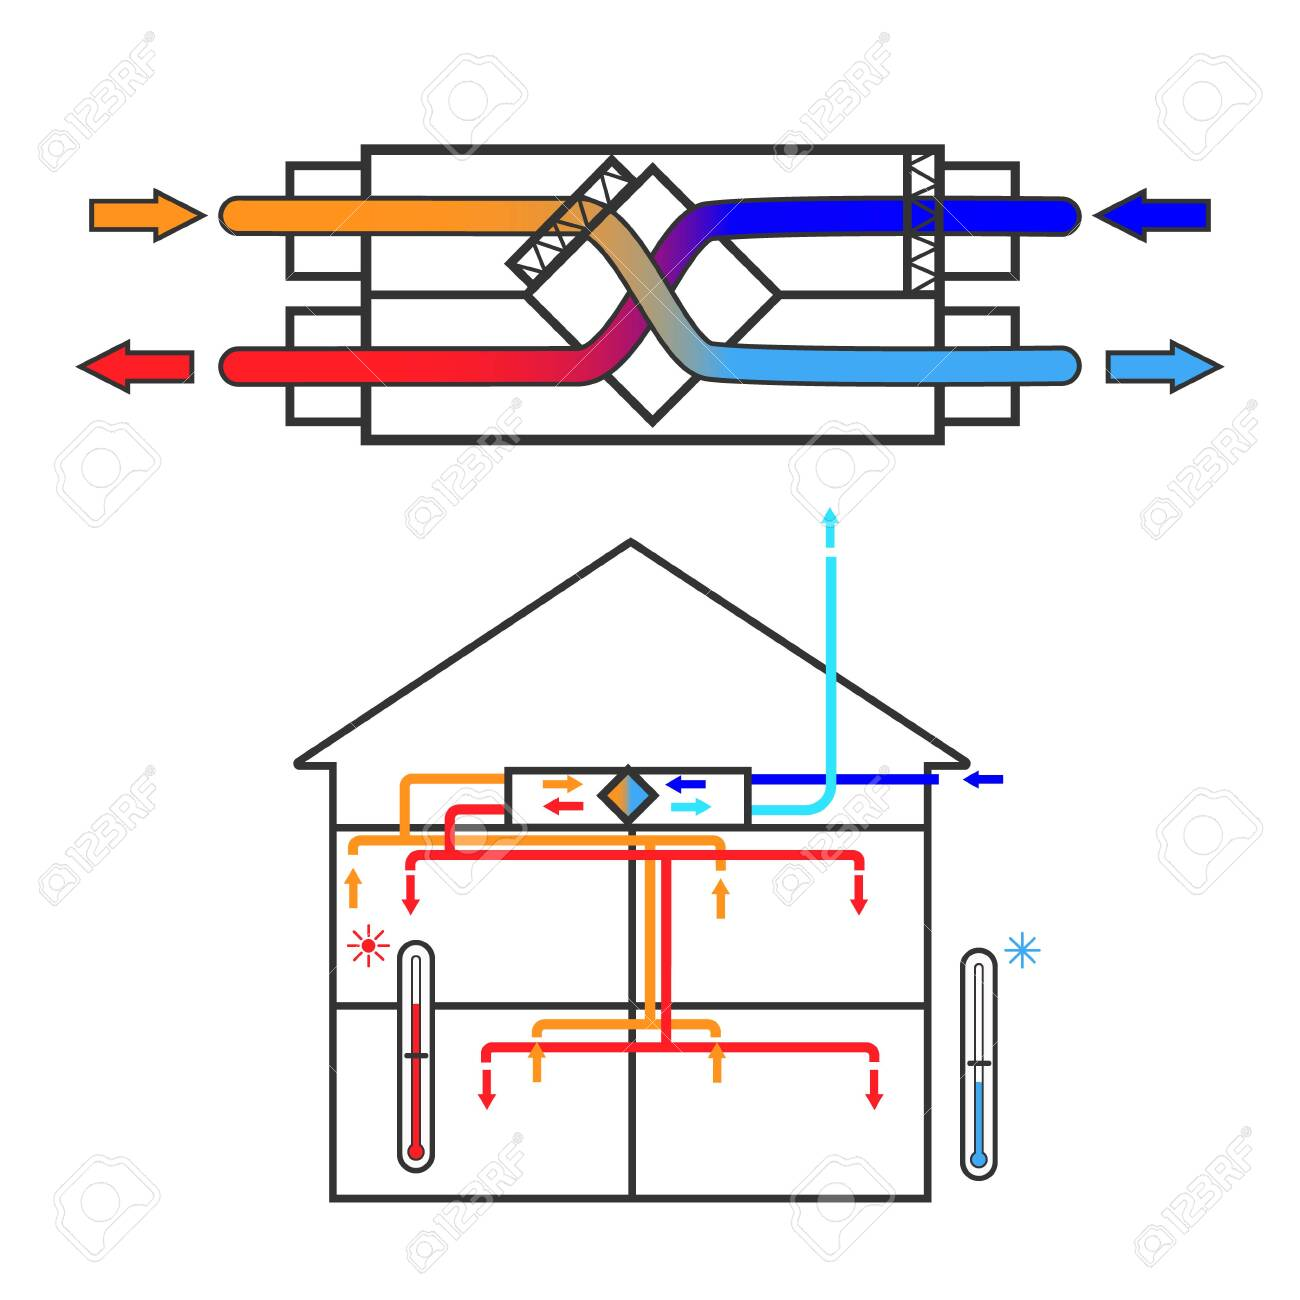 A simple diagram of a ventilation system recuperator. Scheme of energy-efficient air recovery in the house. Illustration isolated on a white background. - 151632252